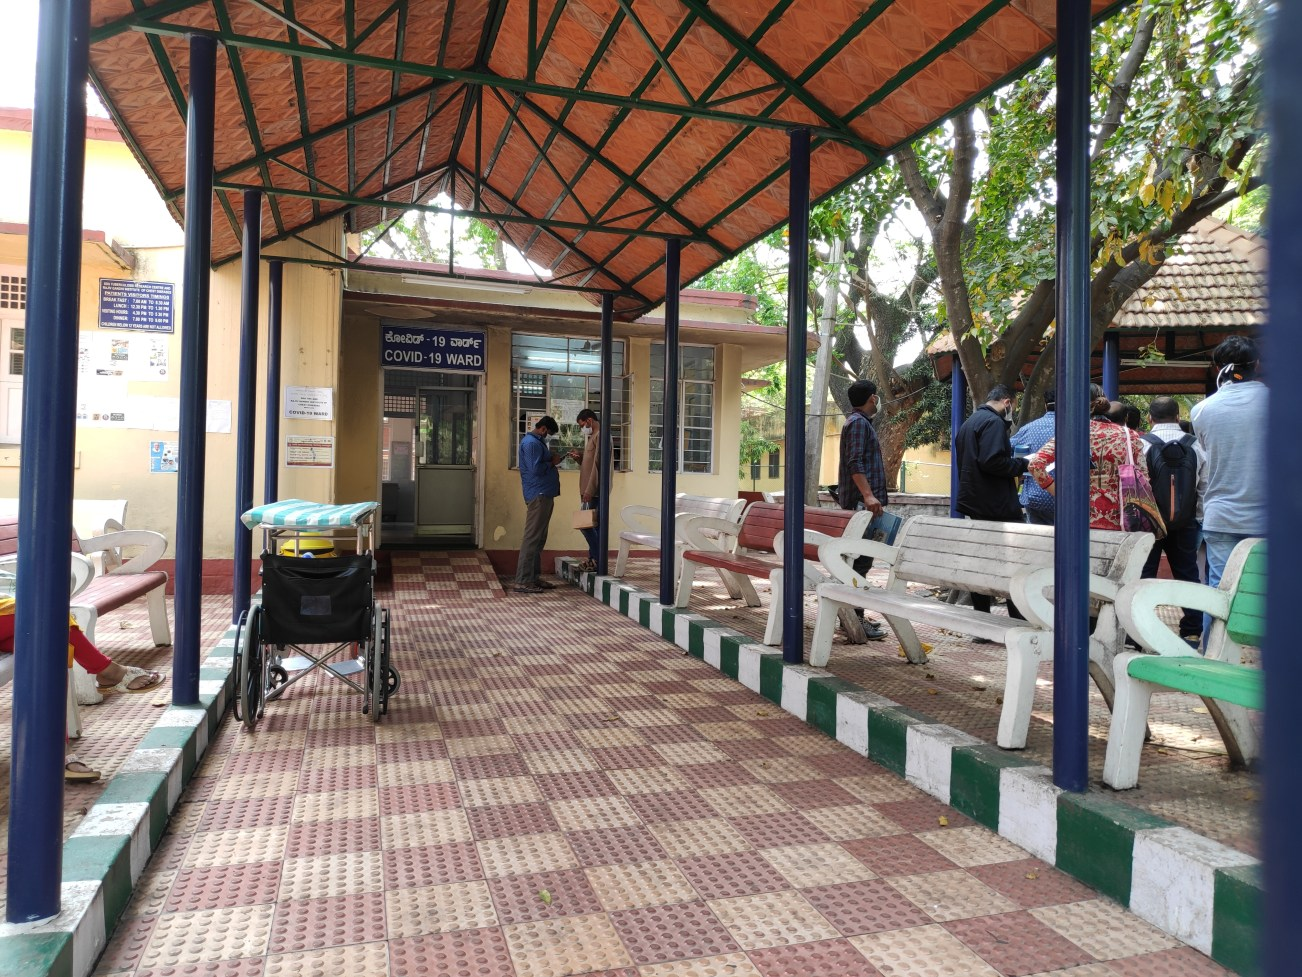 142157361 - bengaluru / bangalore, india - march 4 2020: a hospital ward for testing covid-19 or coronavirus setup in bangalore, india. the infectious disease has over 93,000 confirmed cases worldwide, with india has reporting 28 confirmed coronavirus cases. COVID-19 case count concept. Image credit: Ajay Bhaskar / 123rf